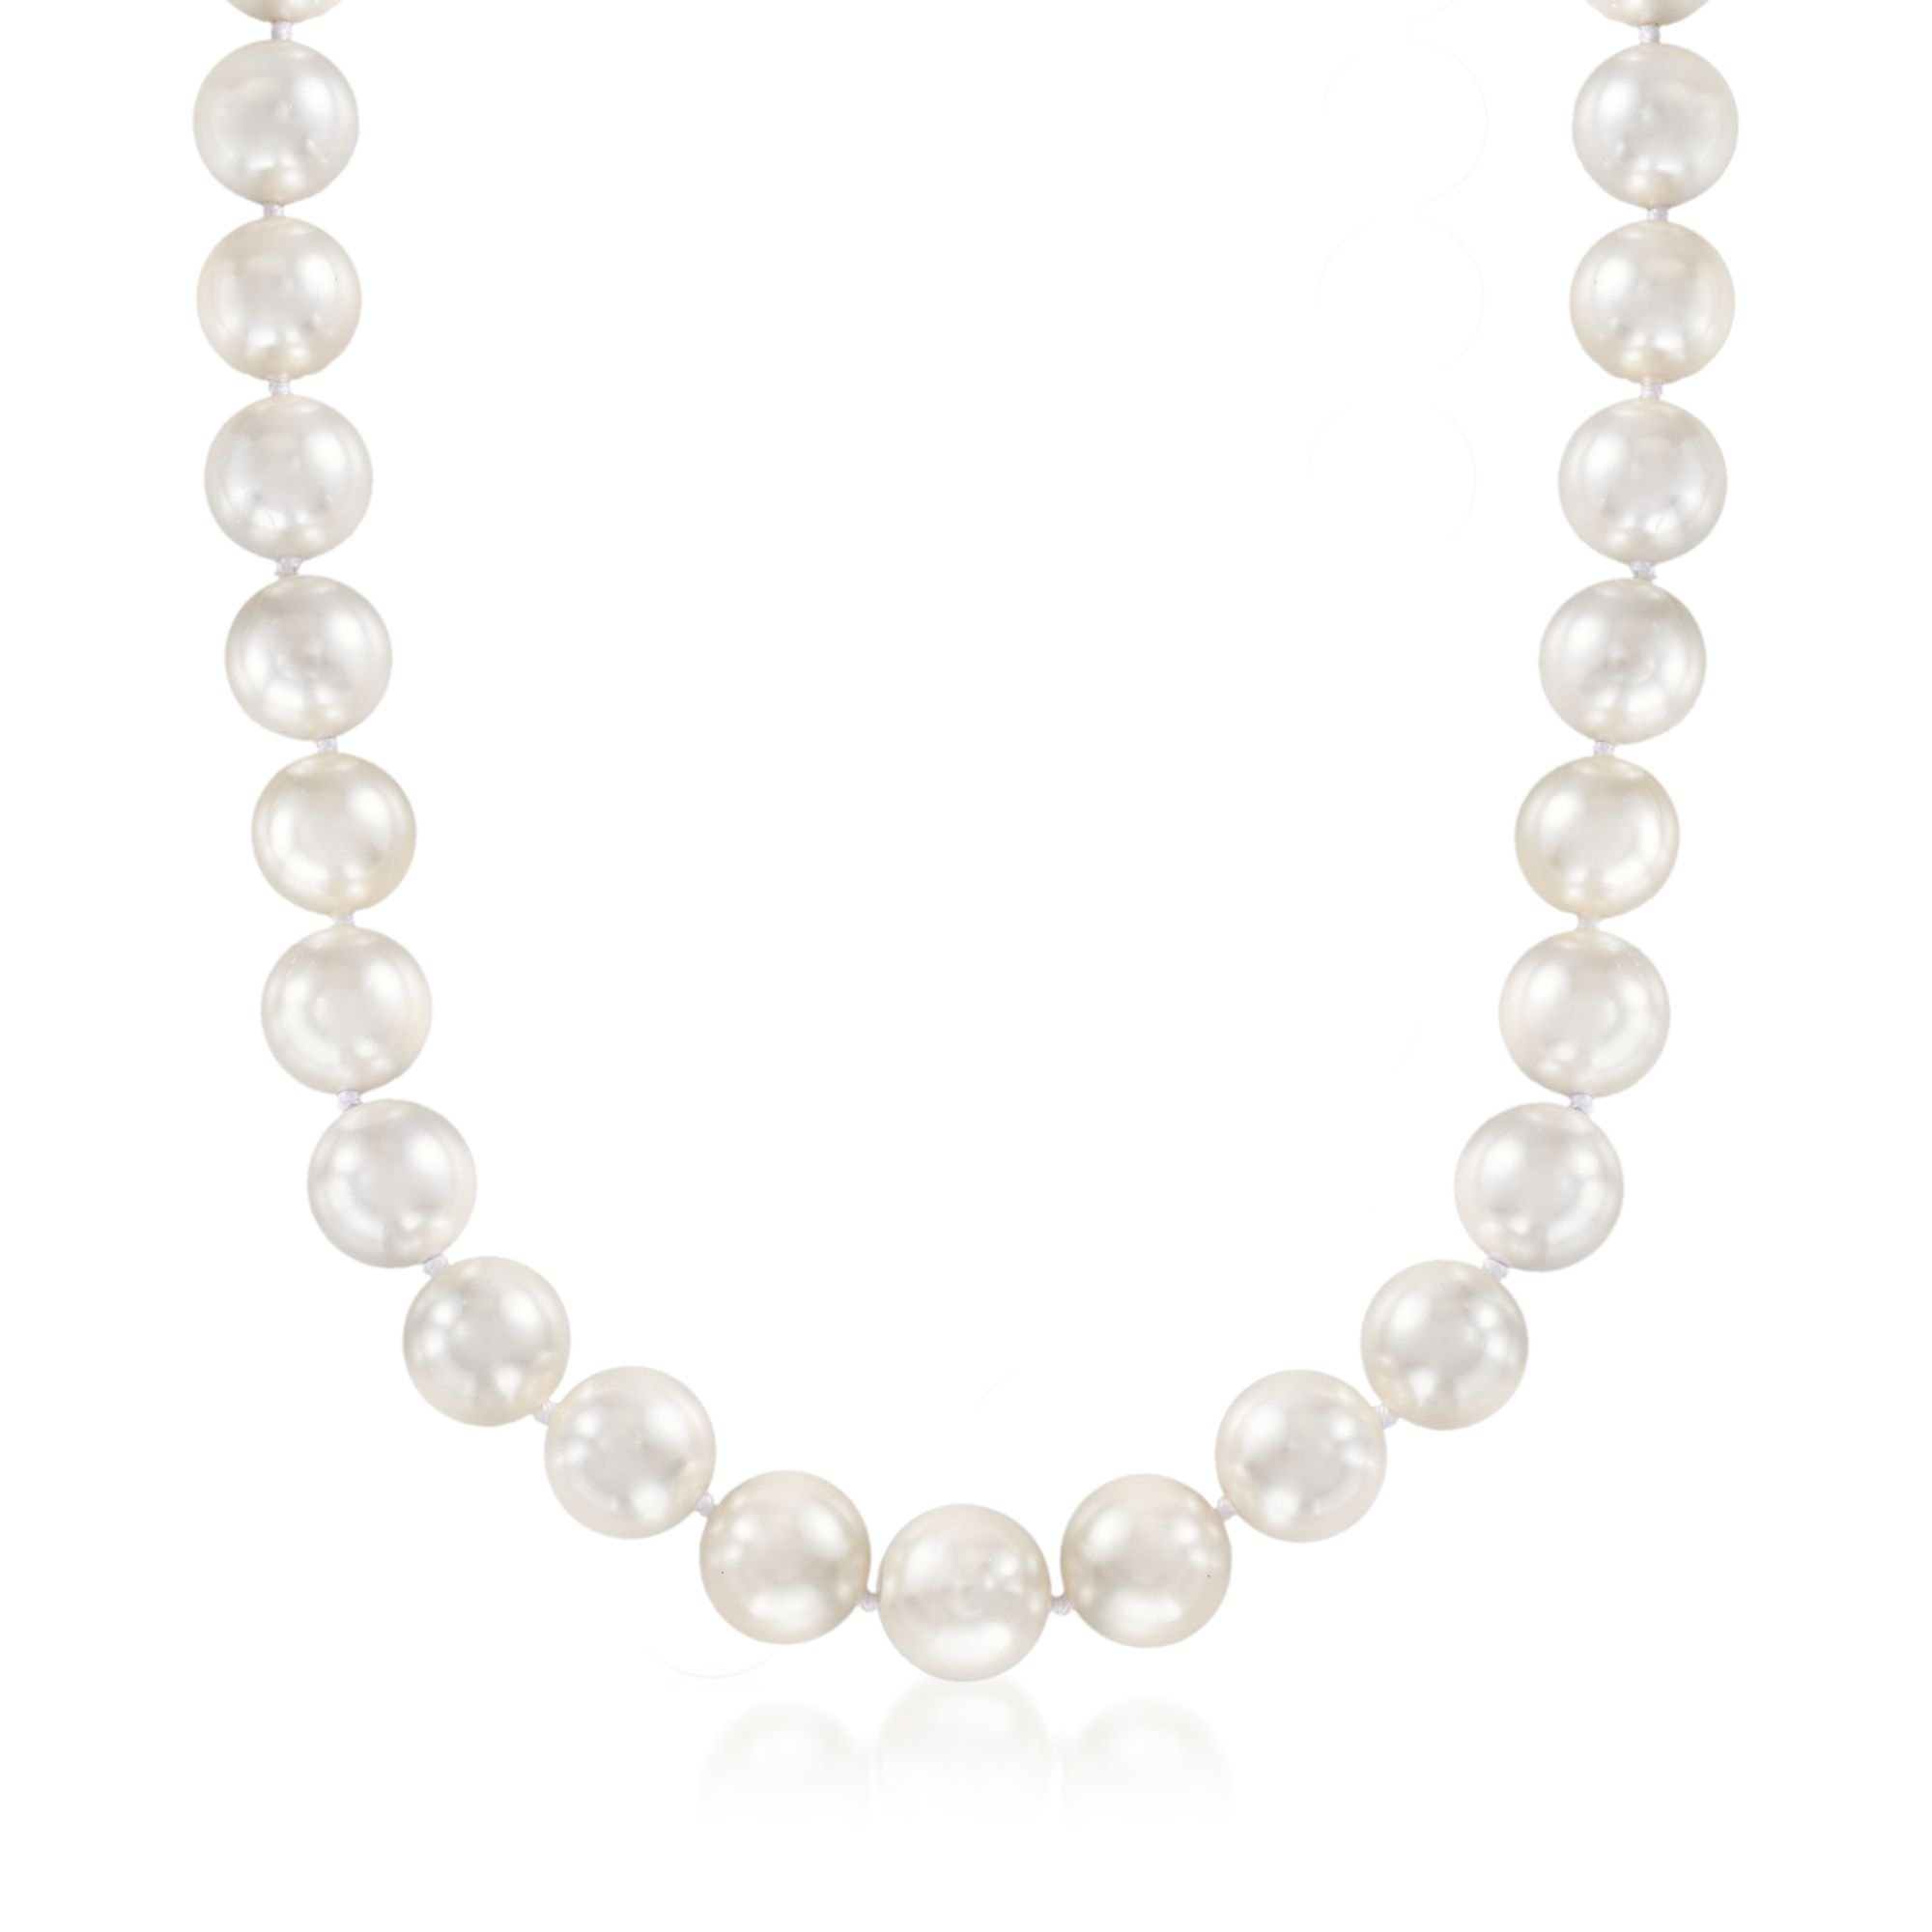 Ross-Simons 13.5-14mm Shell Pearl Necklace With Sterling Silver